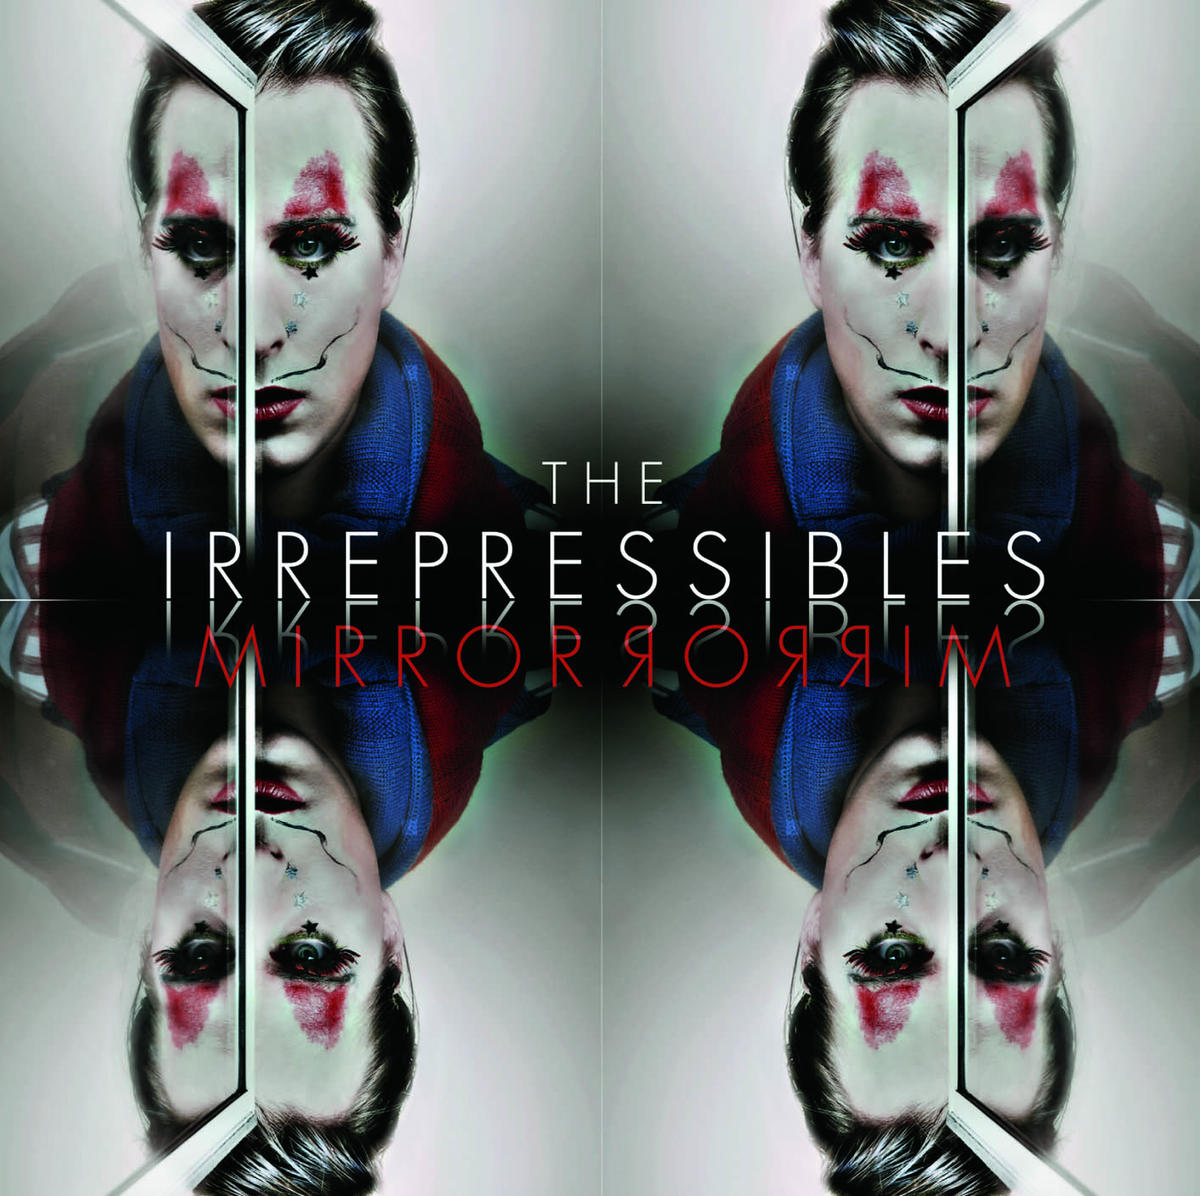 The Irrepressibles - In this shirt (OST